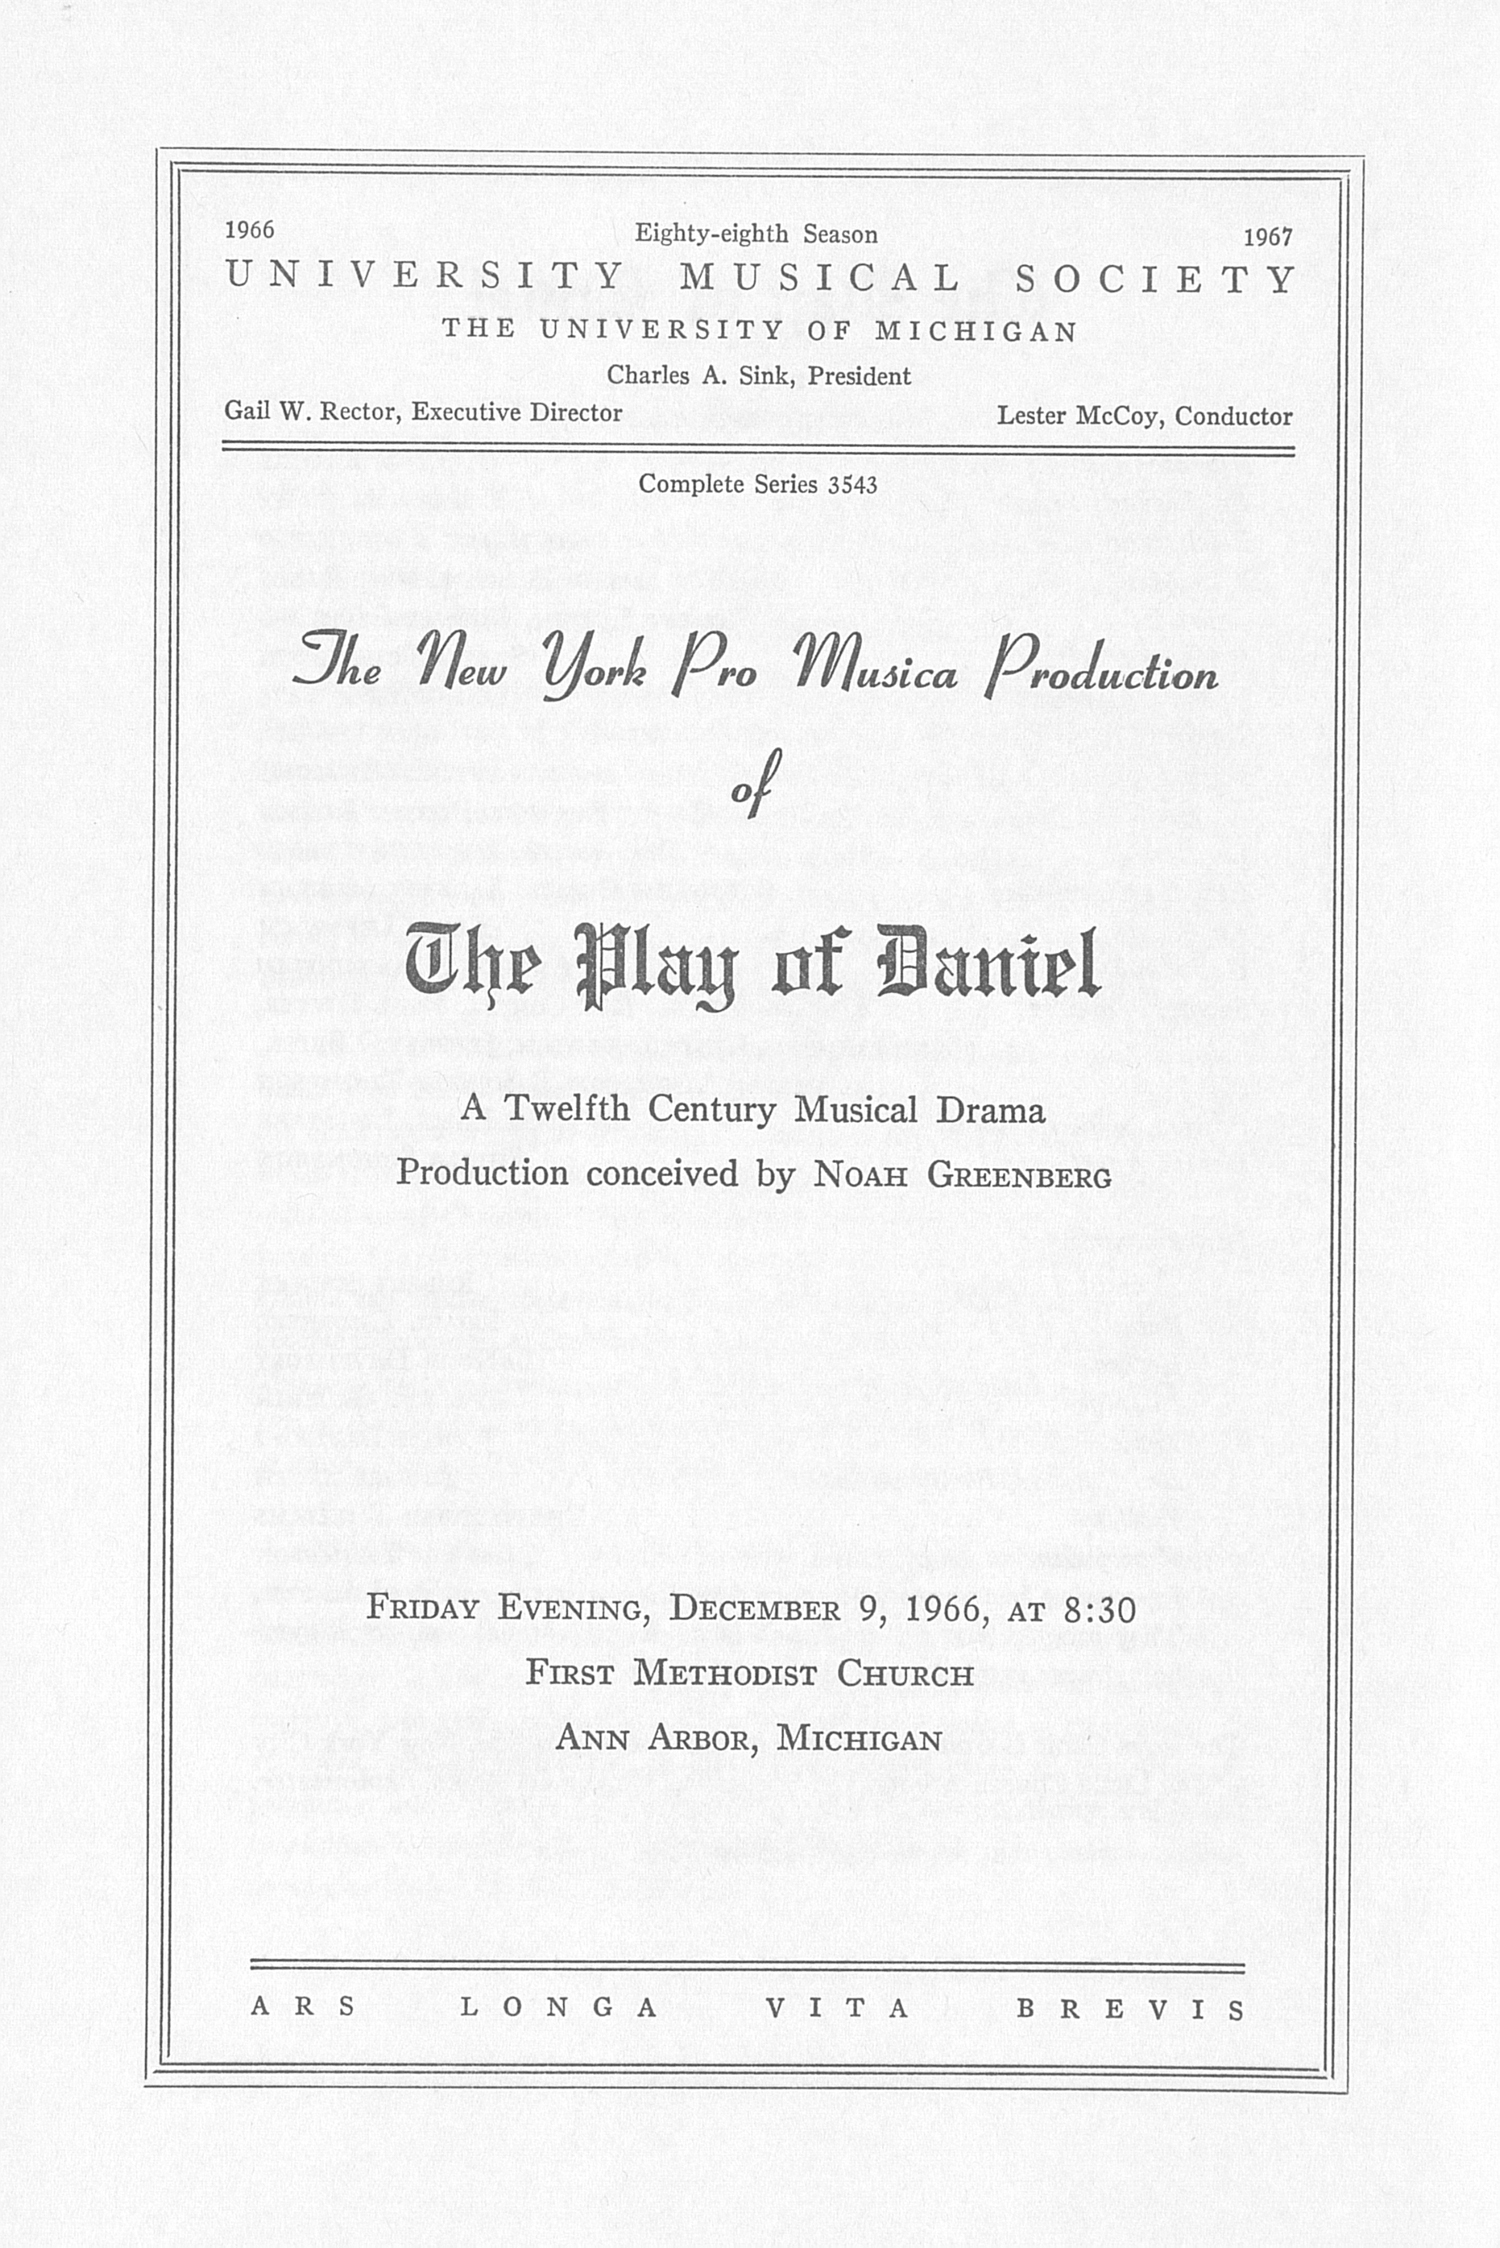 UMS Concert Program, December 9, 1966: The Paly Of Daniel -- Noah Greenberg image